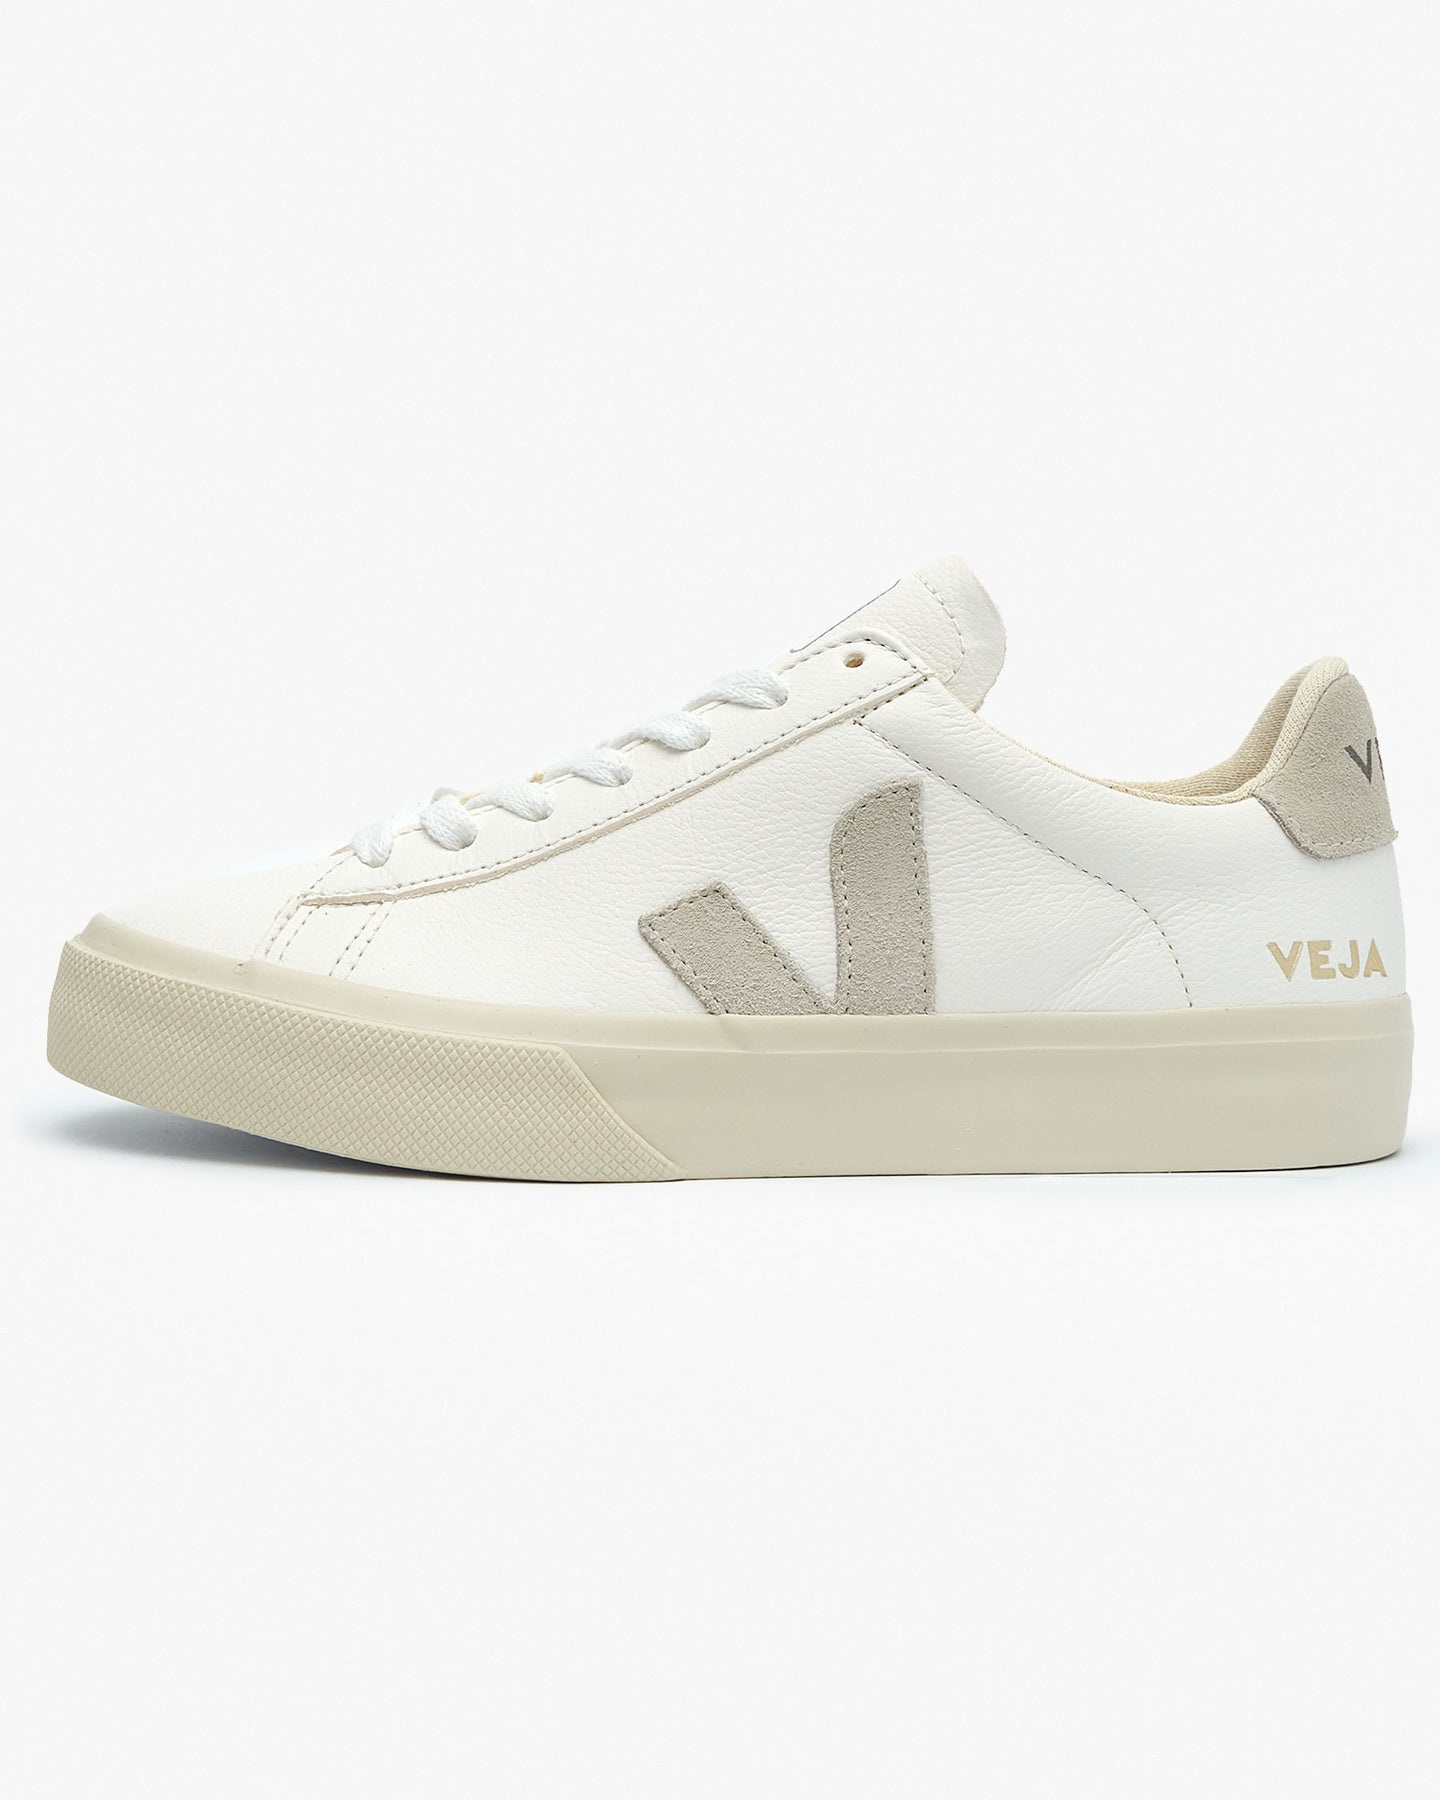 Veja Womens Campo Chromefree Leather Sneakers - Extra White / Natural UK 3 CP052429A3 3611820007352 Veja Trainers